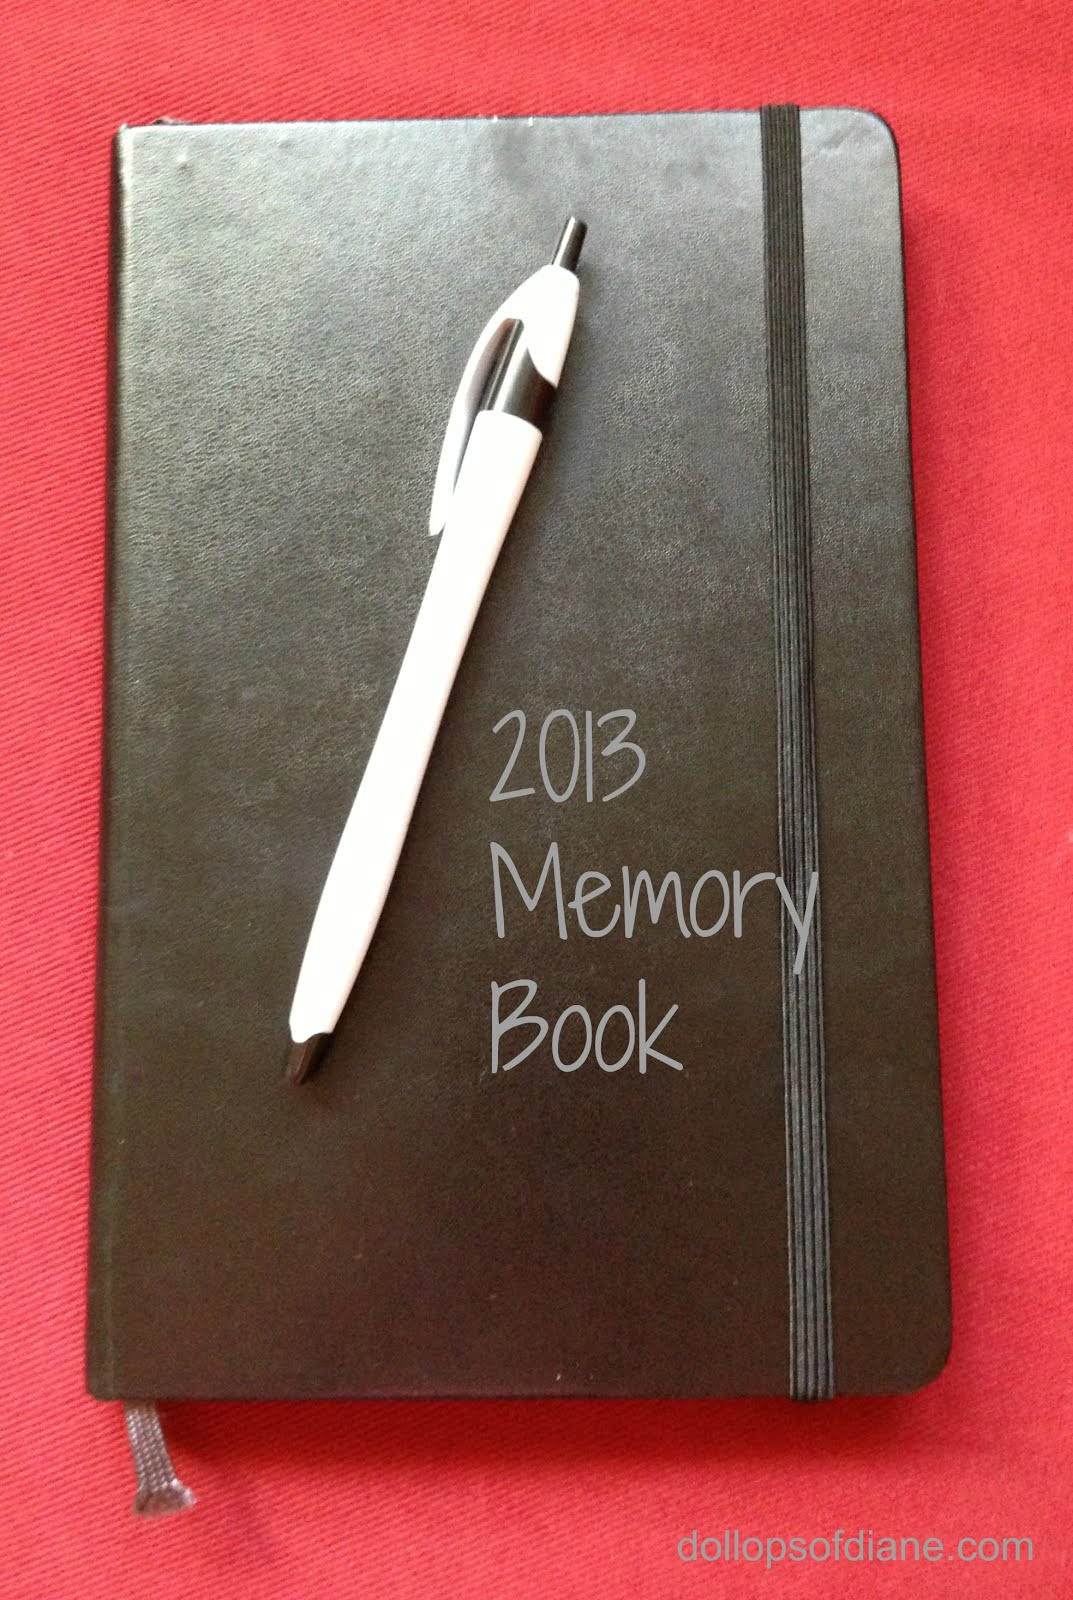 Dollops of diane 2013 memory book one month down do you document your year somehow its not too late to start a book like this yourself after all who says that it has to start in january solutioingenieria Choice Image